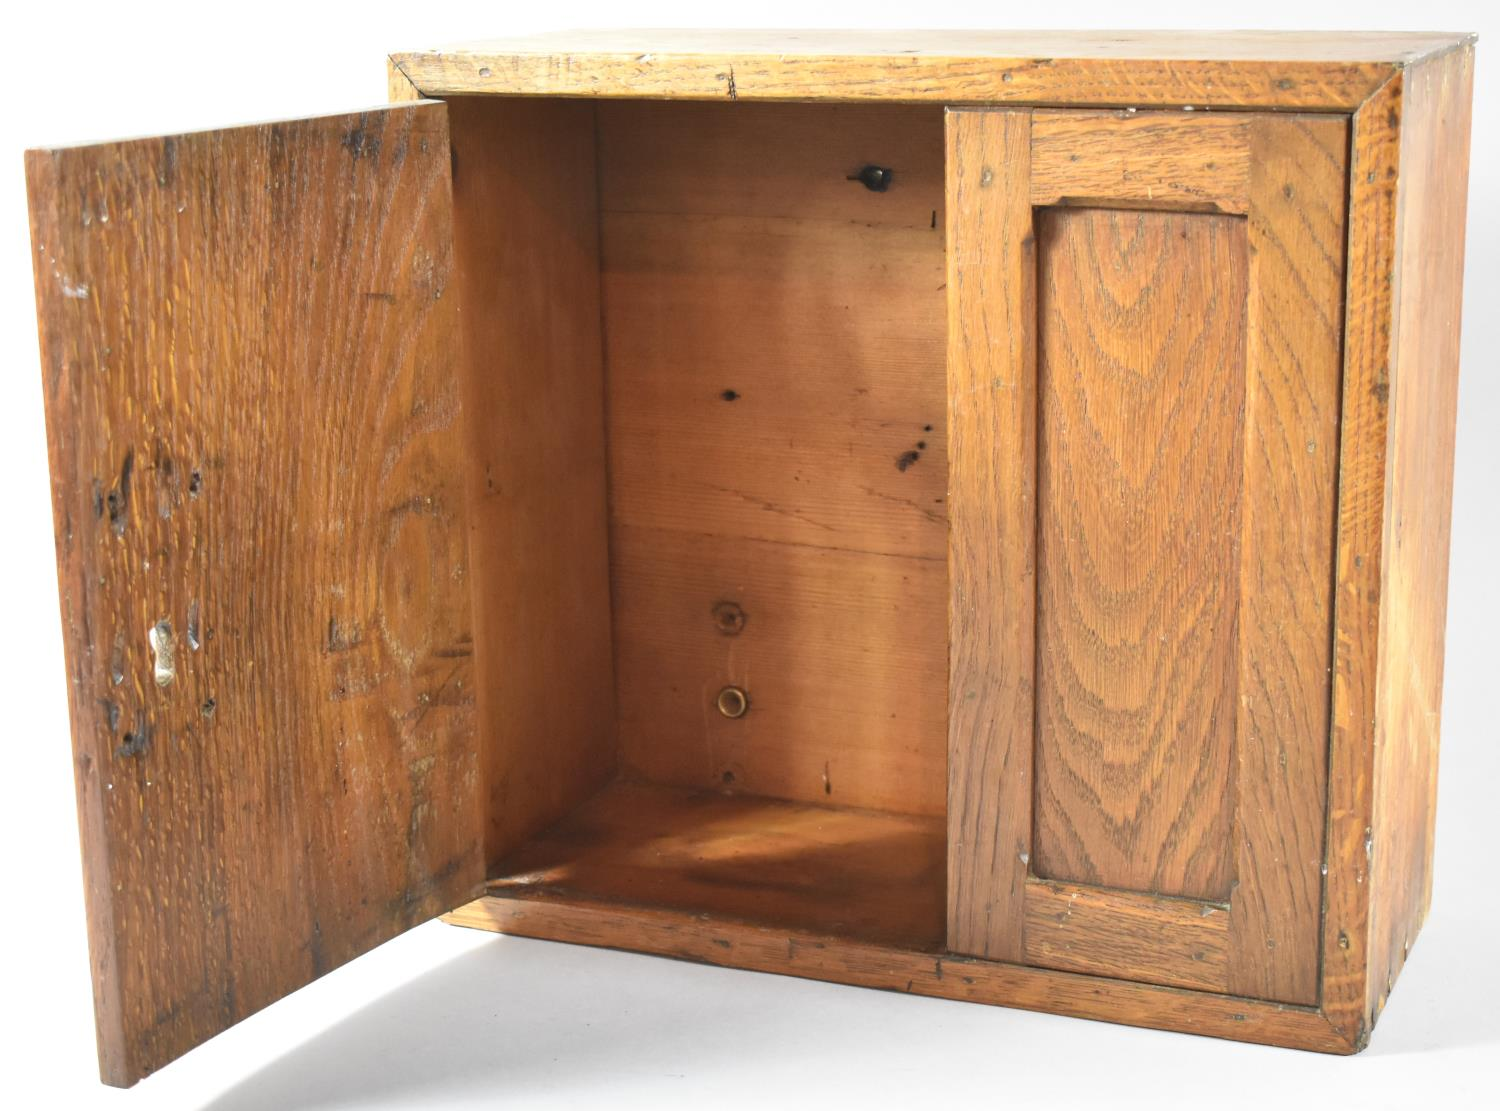 A Wall Hanging Oak Cabinet with Panelled Door, 35.5cm Wide - Image 2 of 2